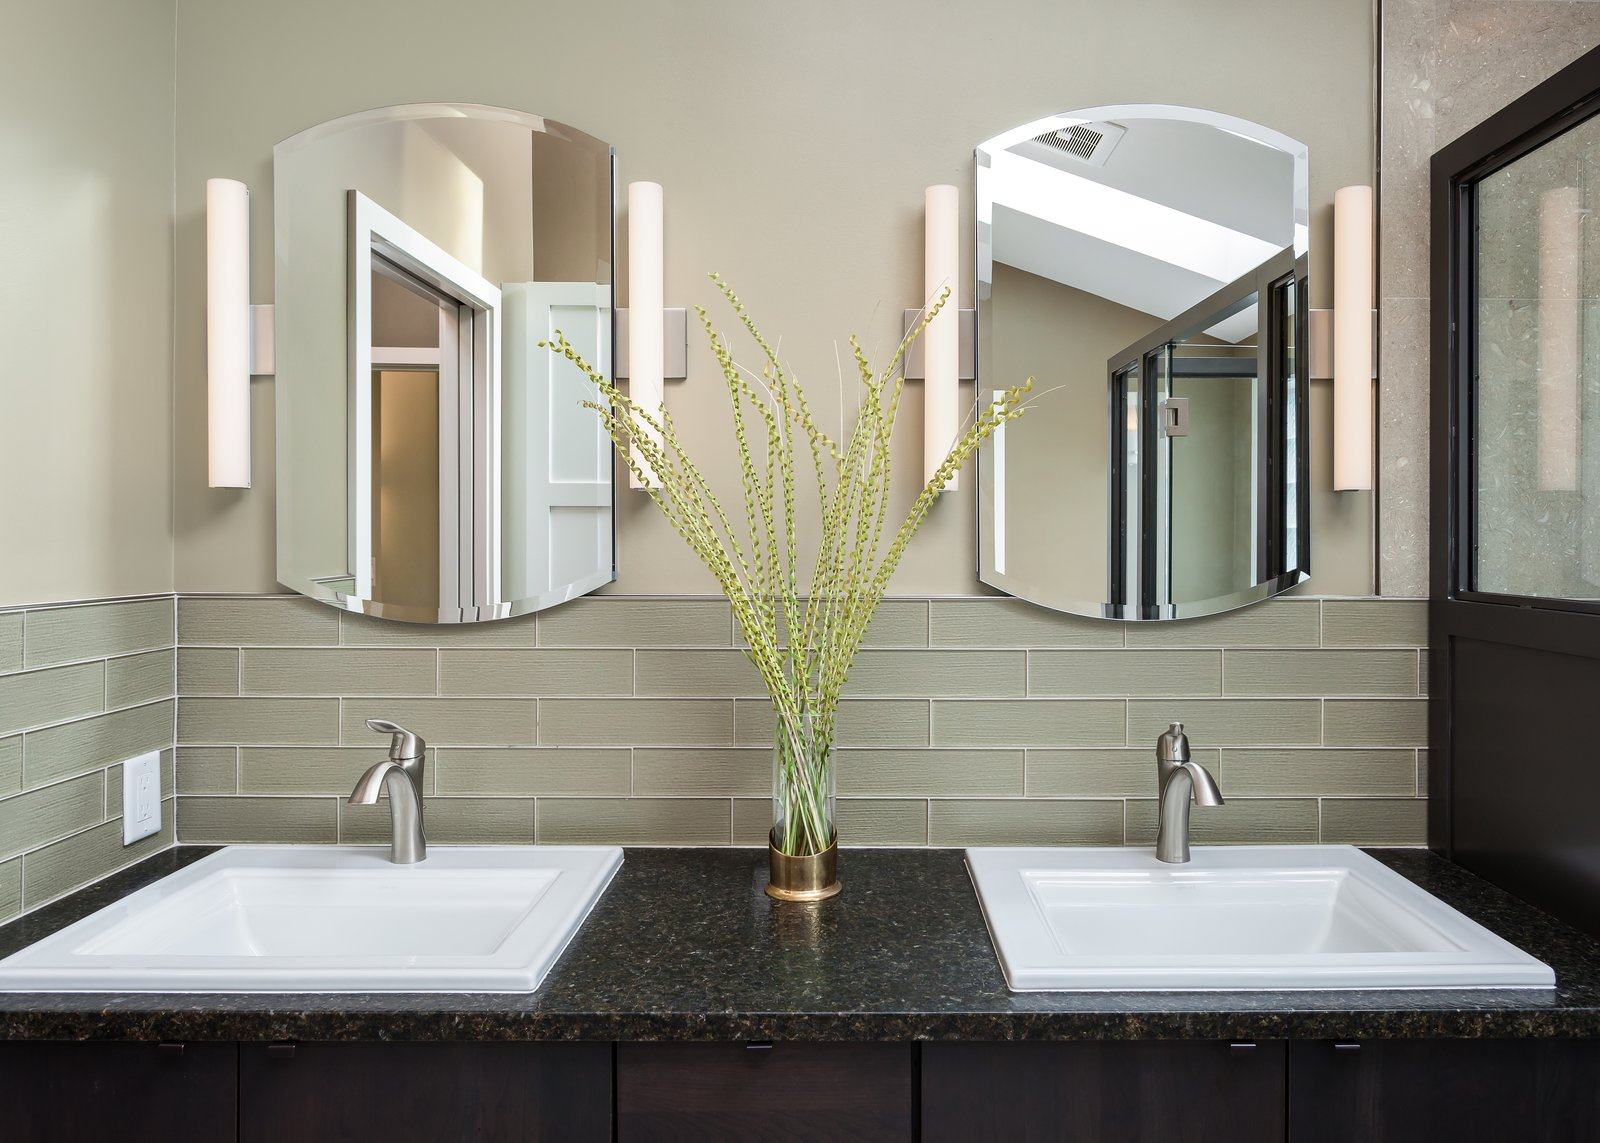 Dual, white square-shaped sinks make the perfect modern bathroom vanities for granite countertops, like the contrasting black one seen here.   Photo 23 of 25 in 25 Best Modern Bathroom Vanities For Your Home from The Ping Pong Home